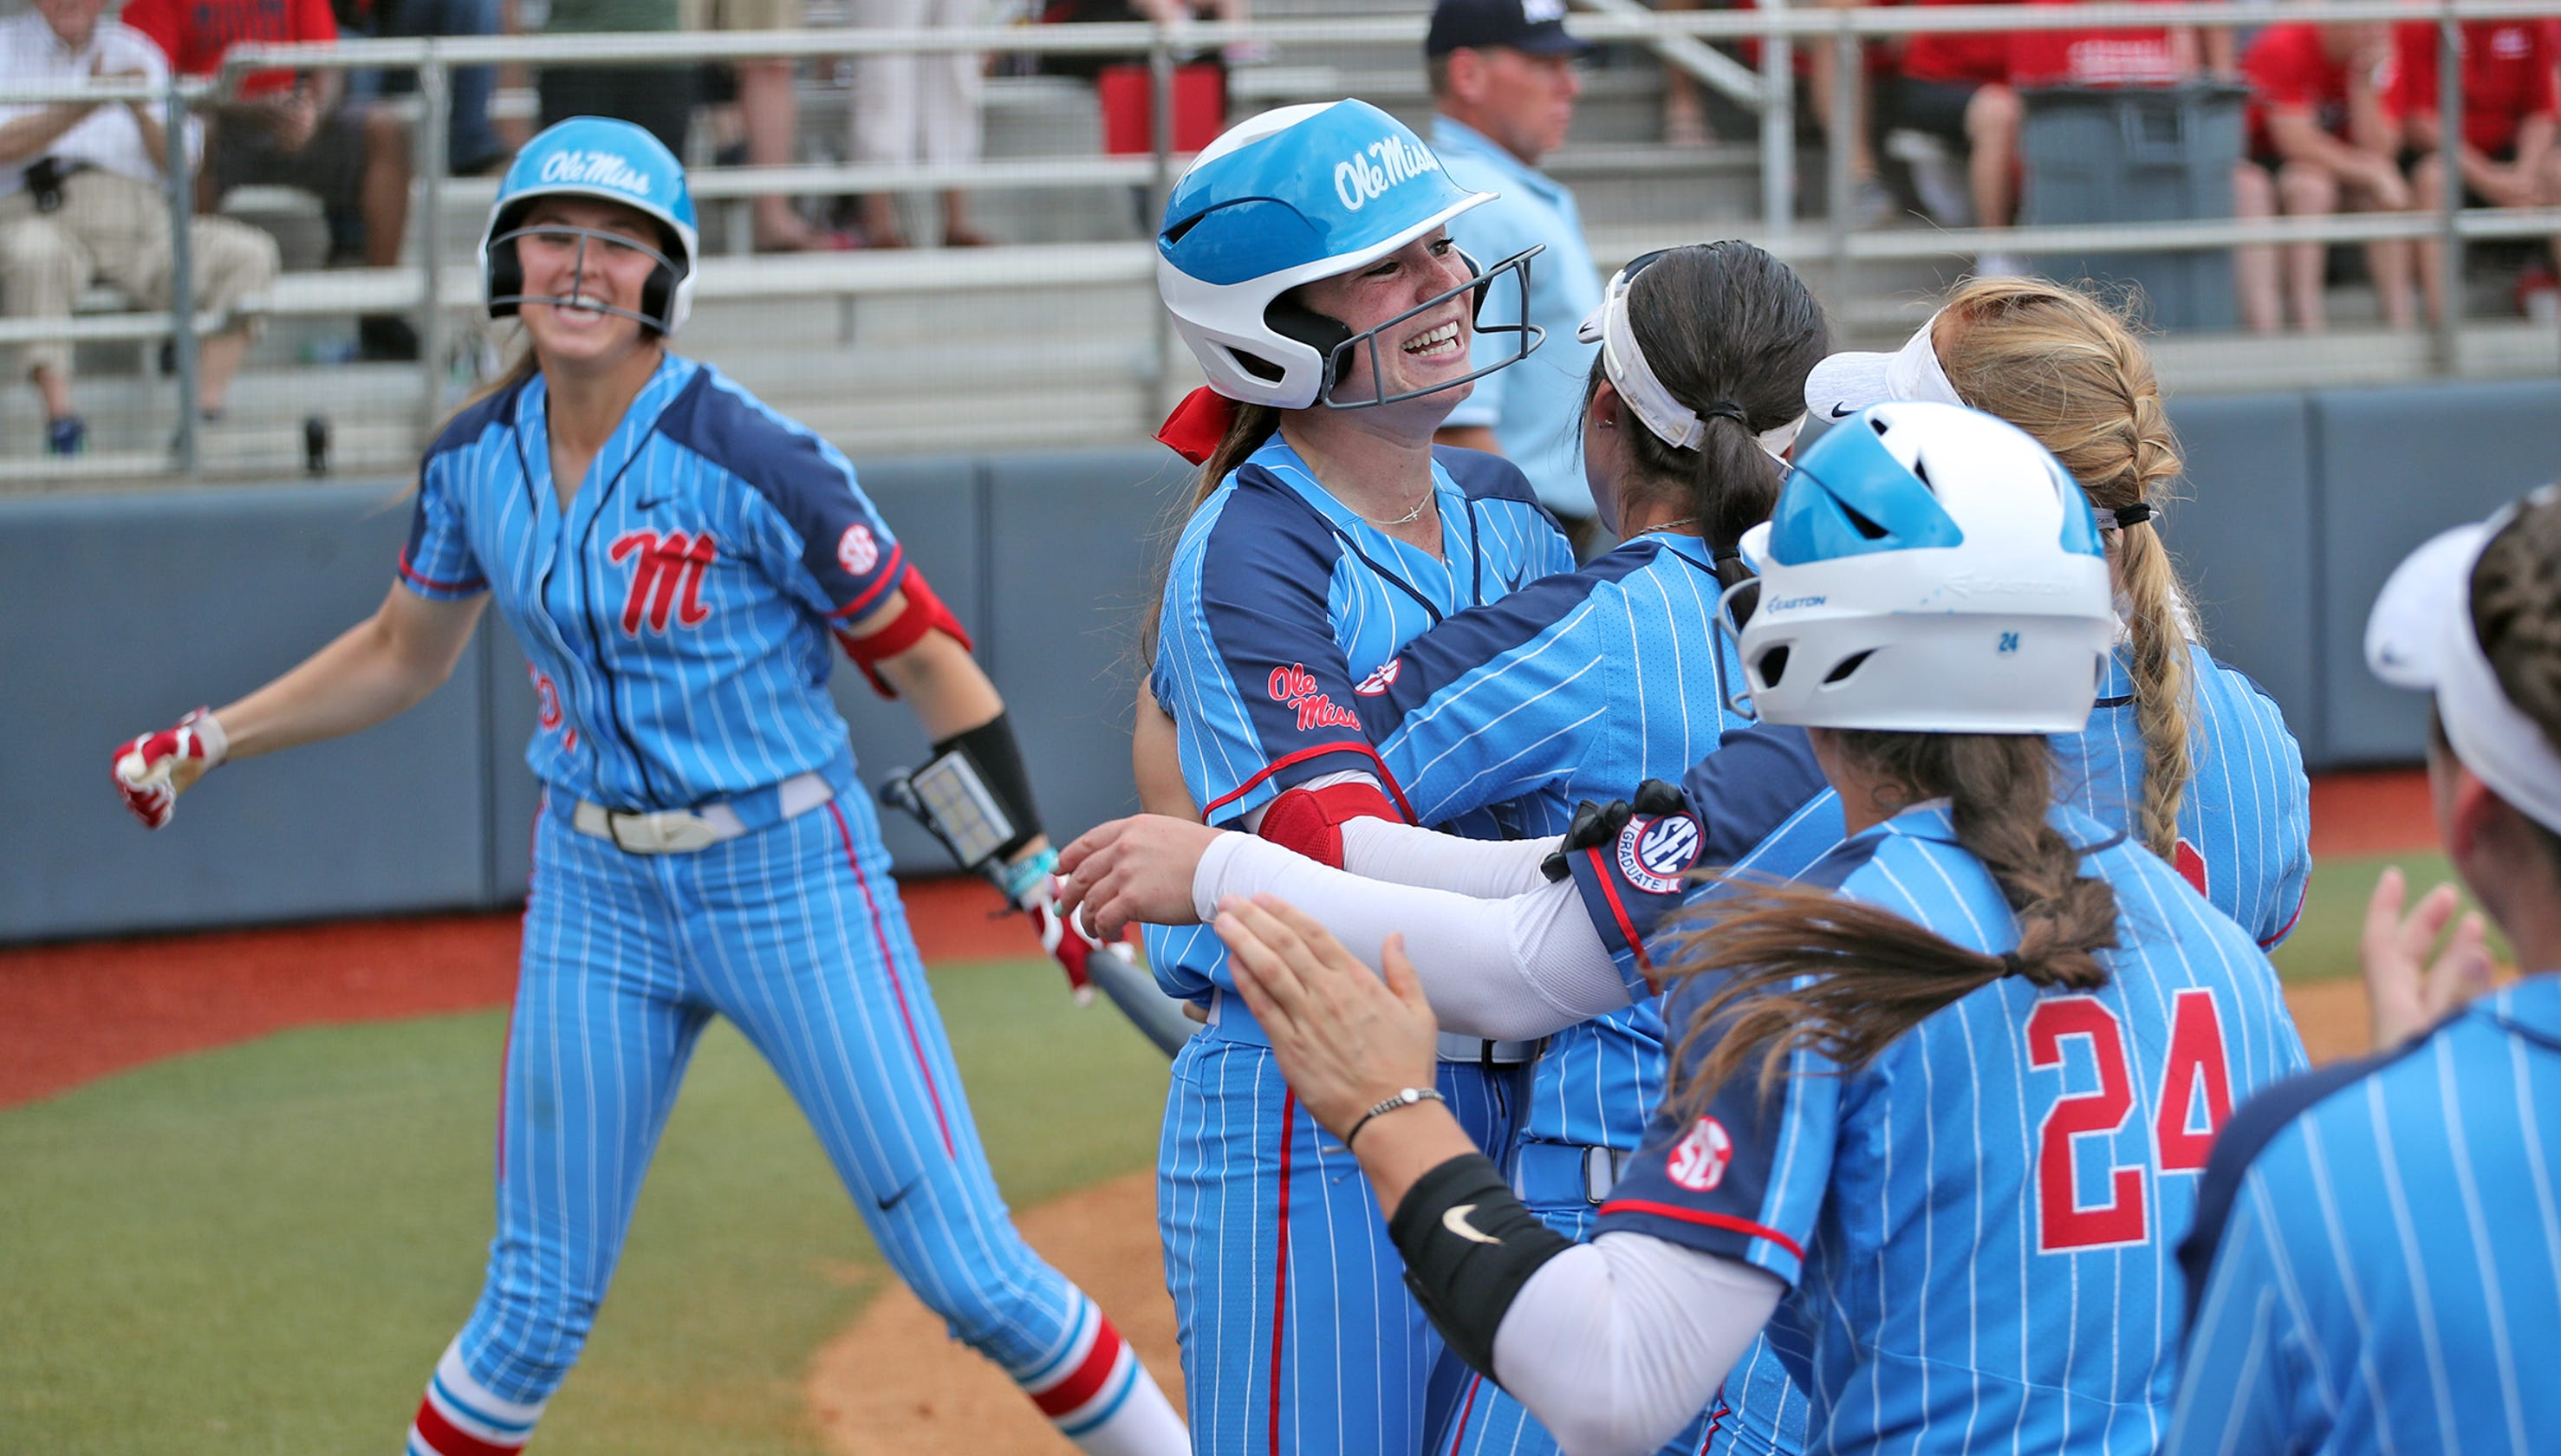 Ole Miss softball comes from behind to beat Louisiana, advances to Super Regionals for first time since 2017